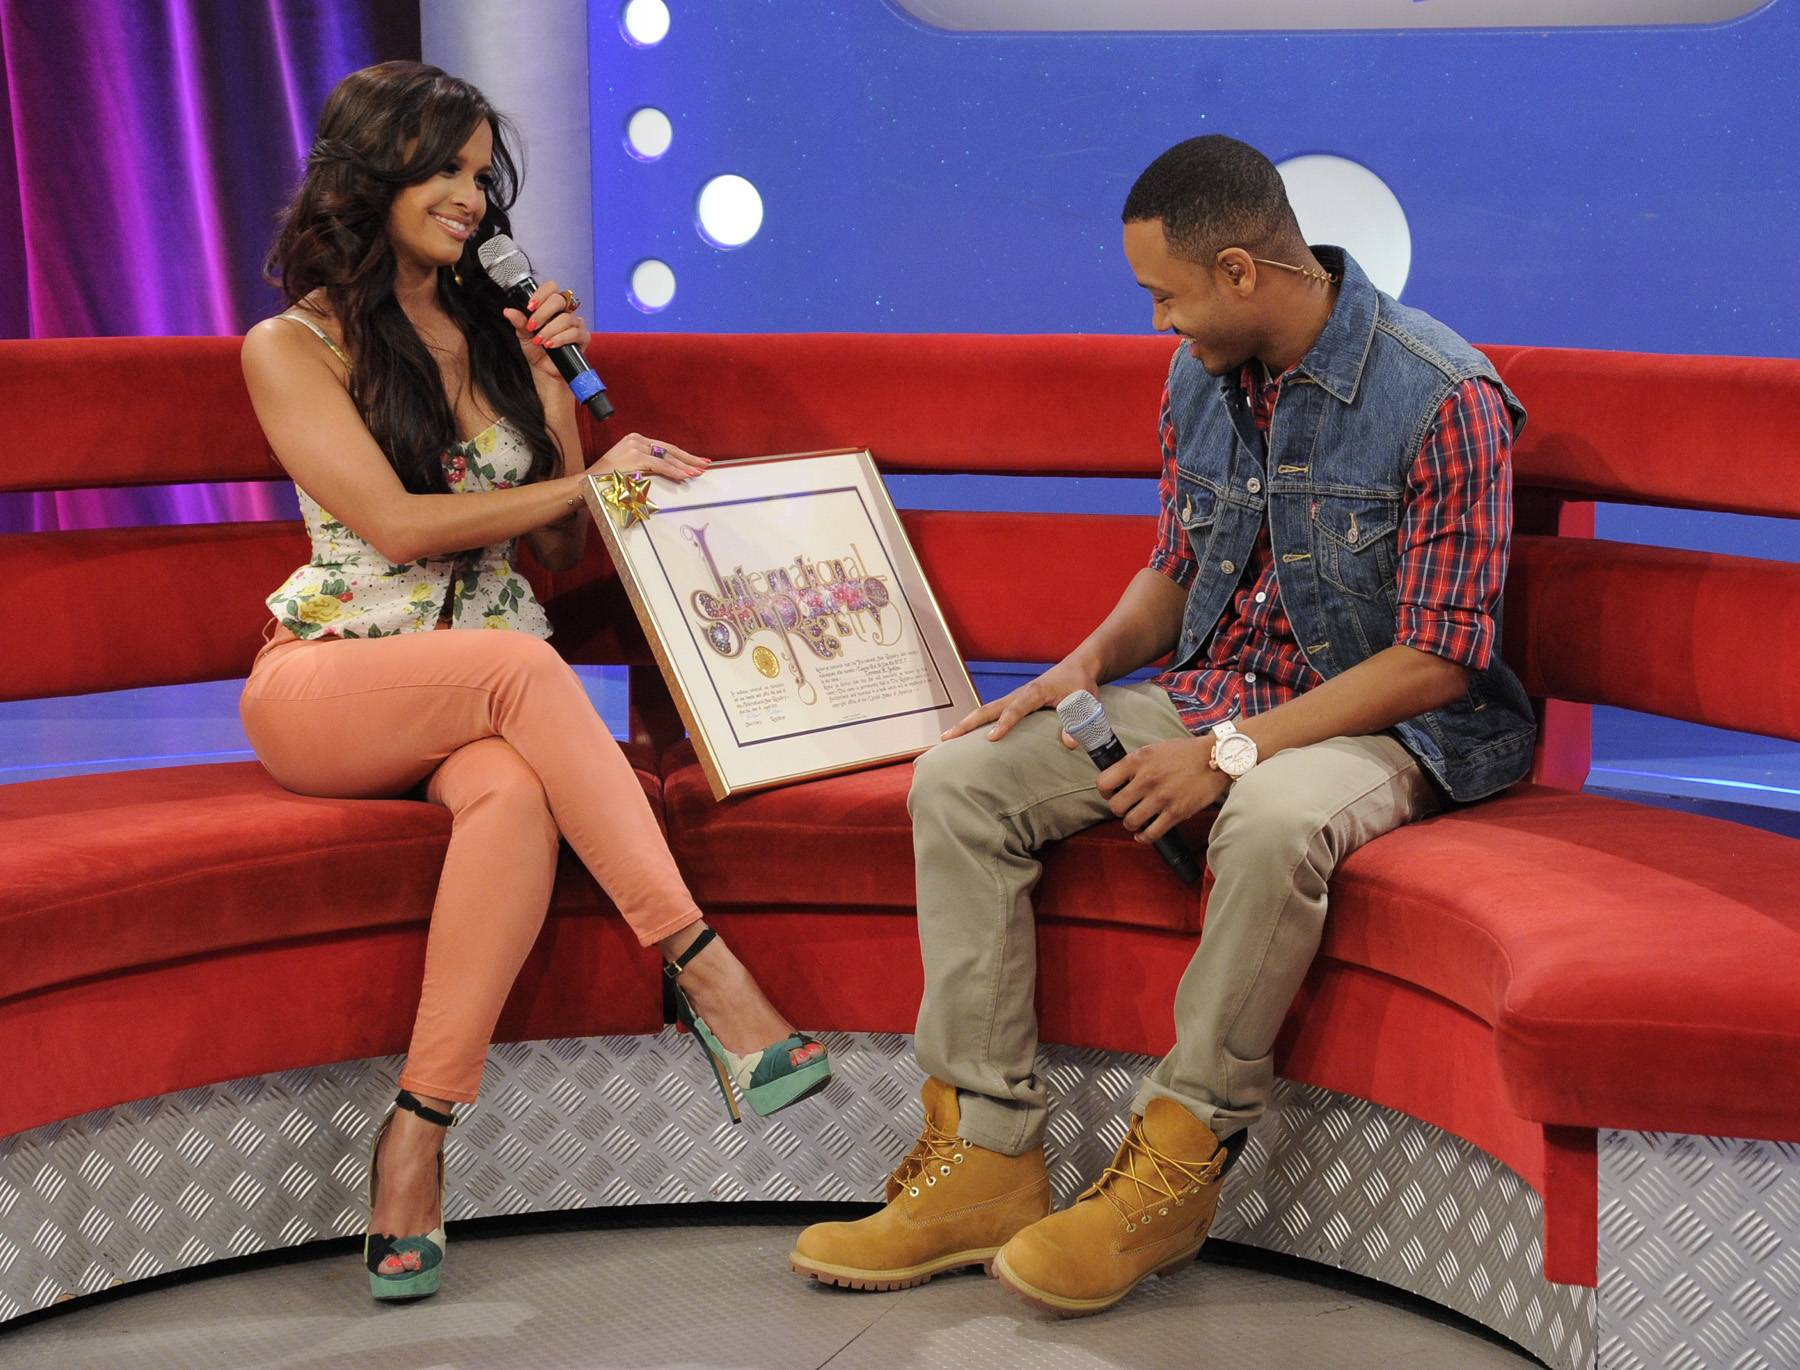 Presenting Something Special - Rocsi Diaz presents Terrence J with a plaque stating that a star has been named after him because he is a rising star at 106 & Park, April 20, 2012. (Photo: John Ricard / BET)